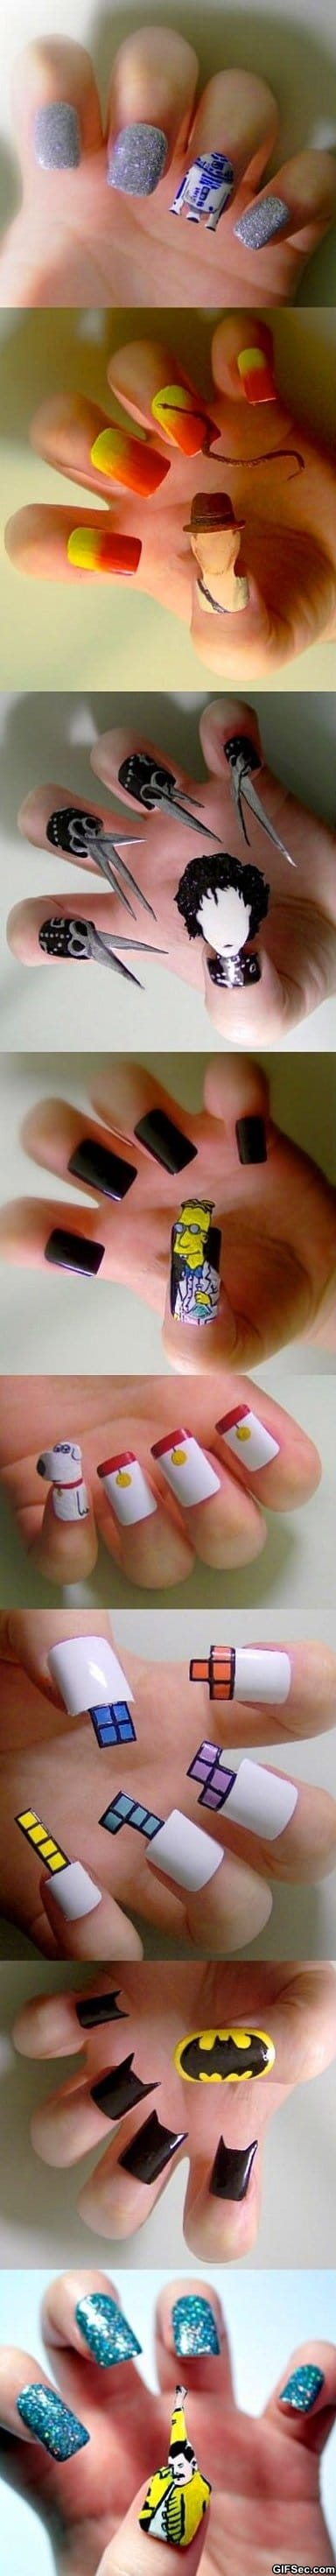 Awesome nail art